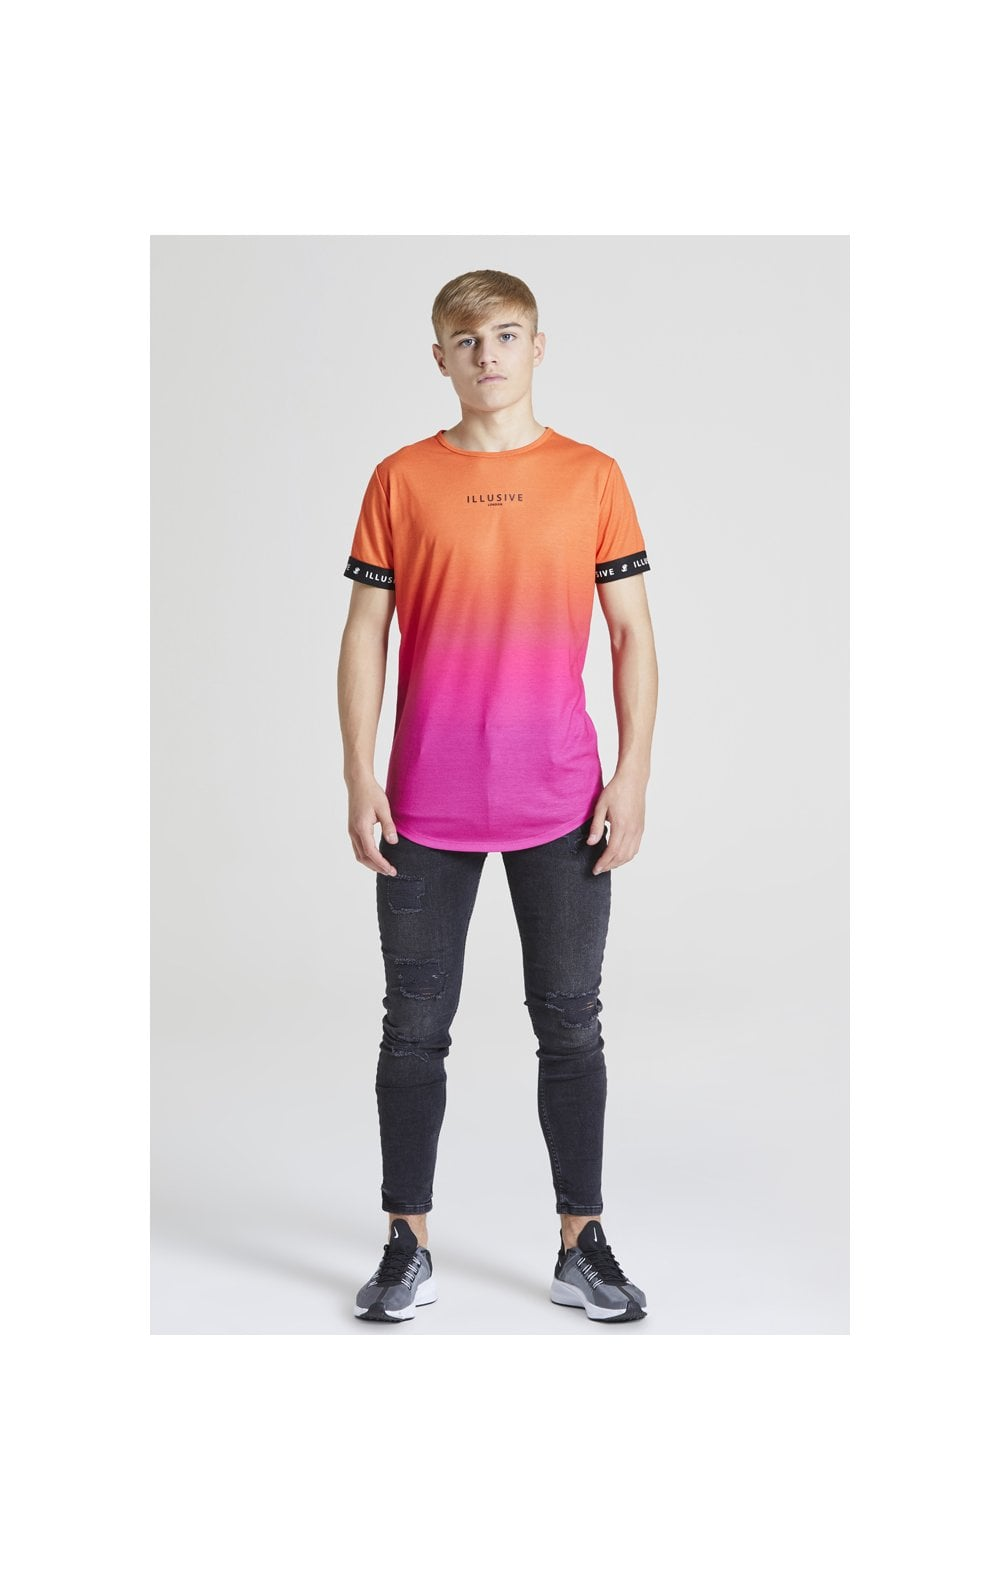 Load image into Gallery viewer, Illusive London Fade Tech Tee - Orange & Pink (3)